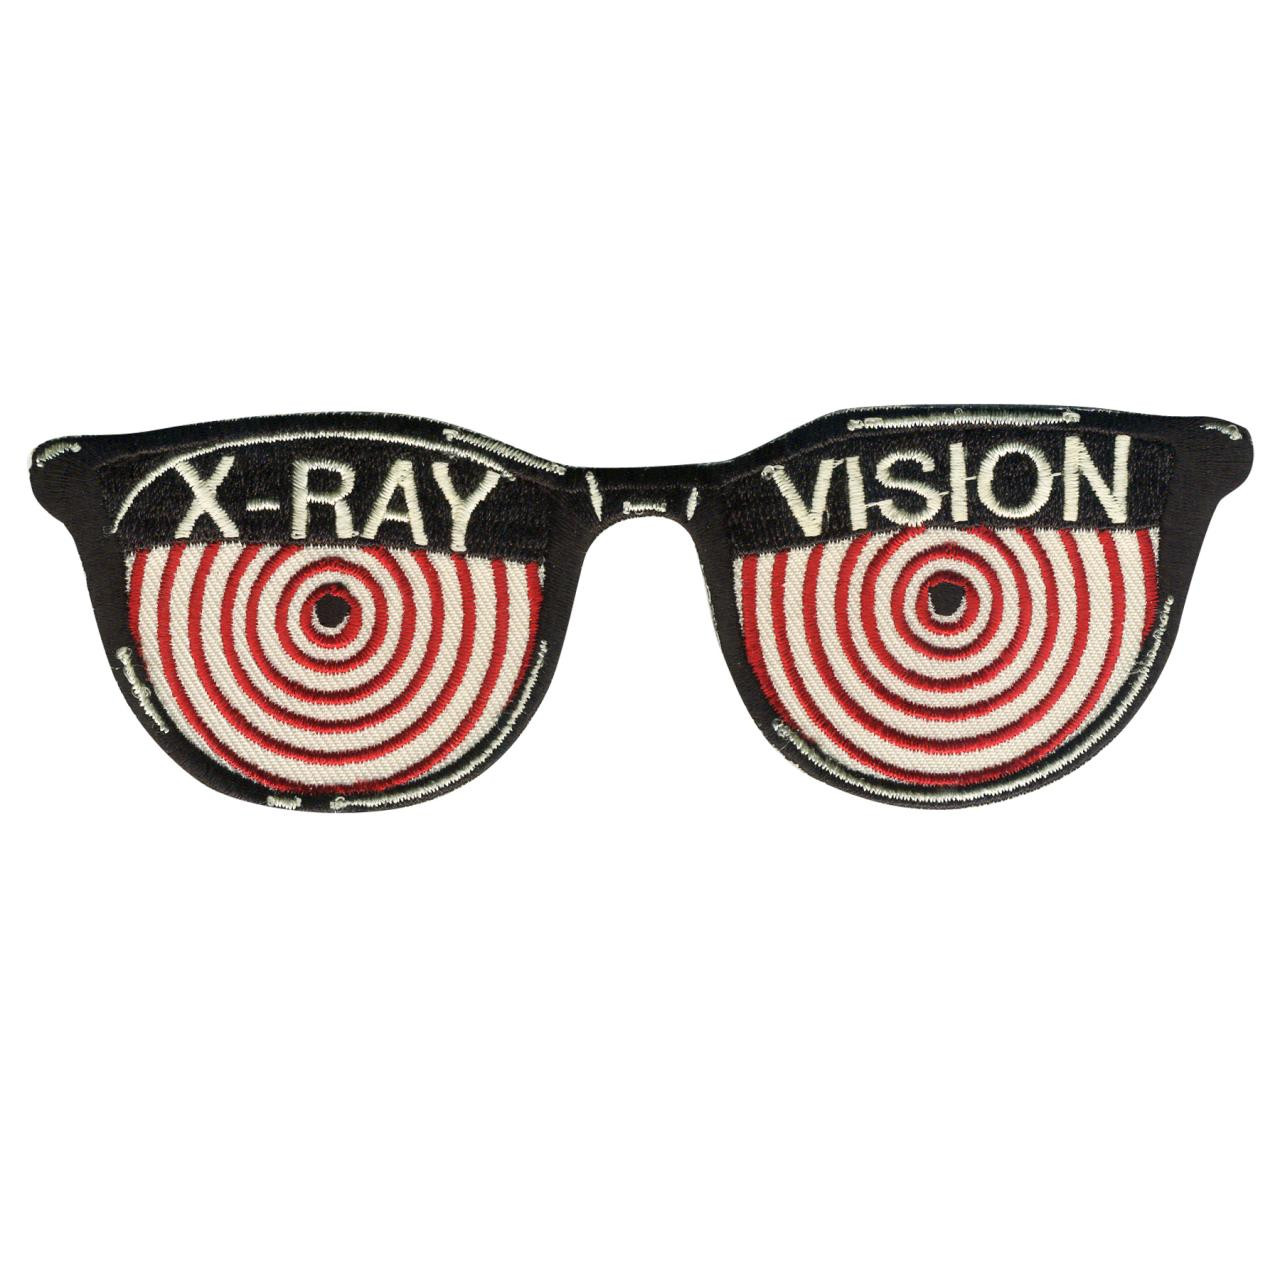 X-ray Vision Patch - 0641938656183